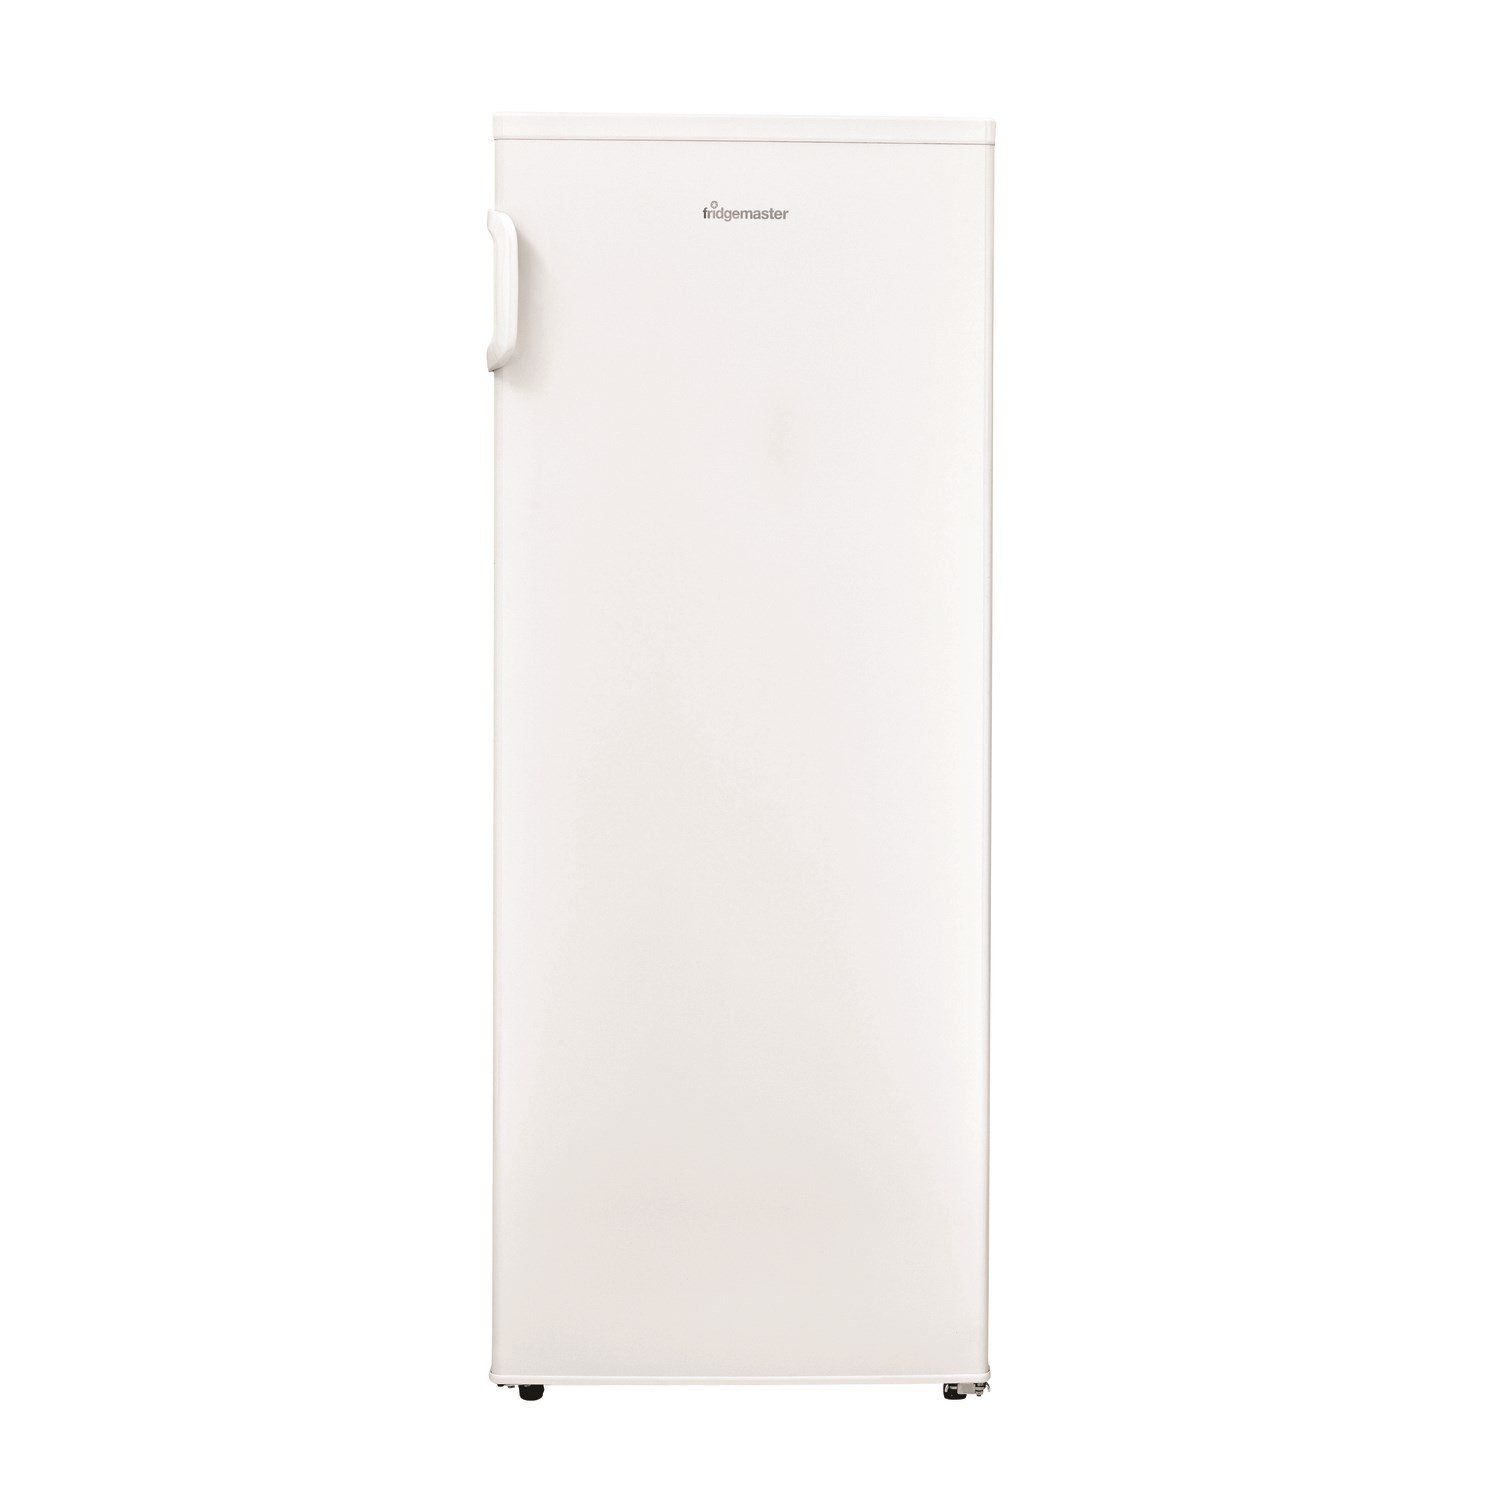 Hisense MTZ55160 Independiente Vertical 160L A+ Blanco ...